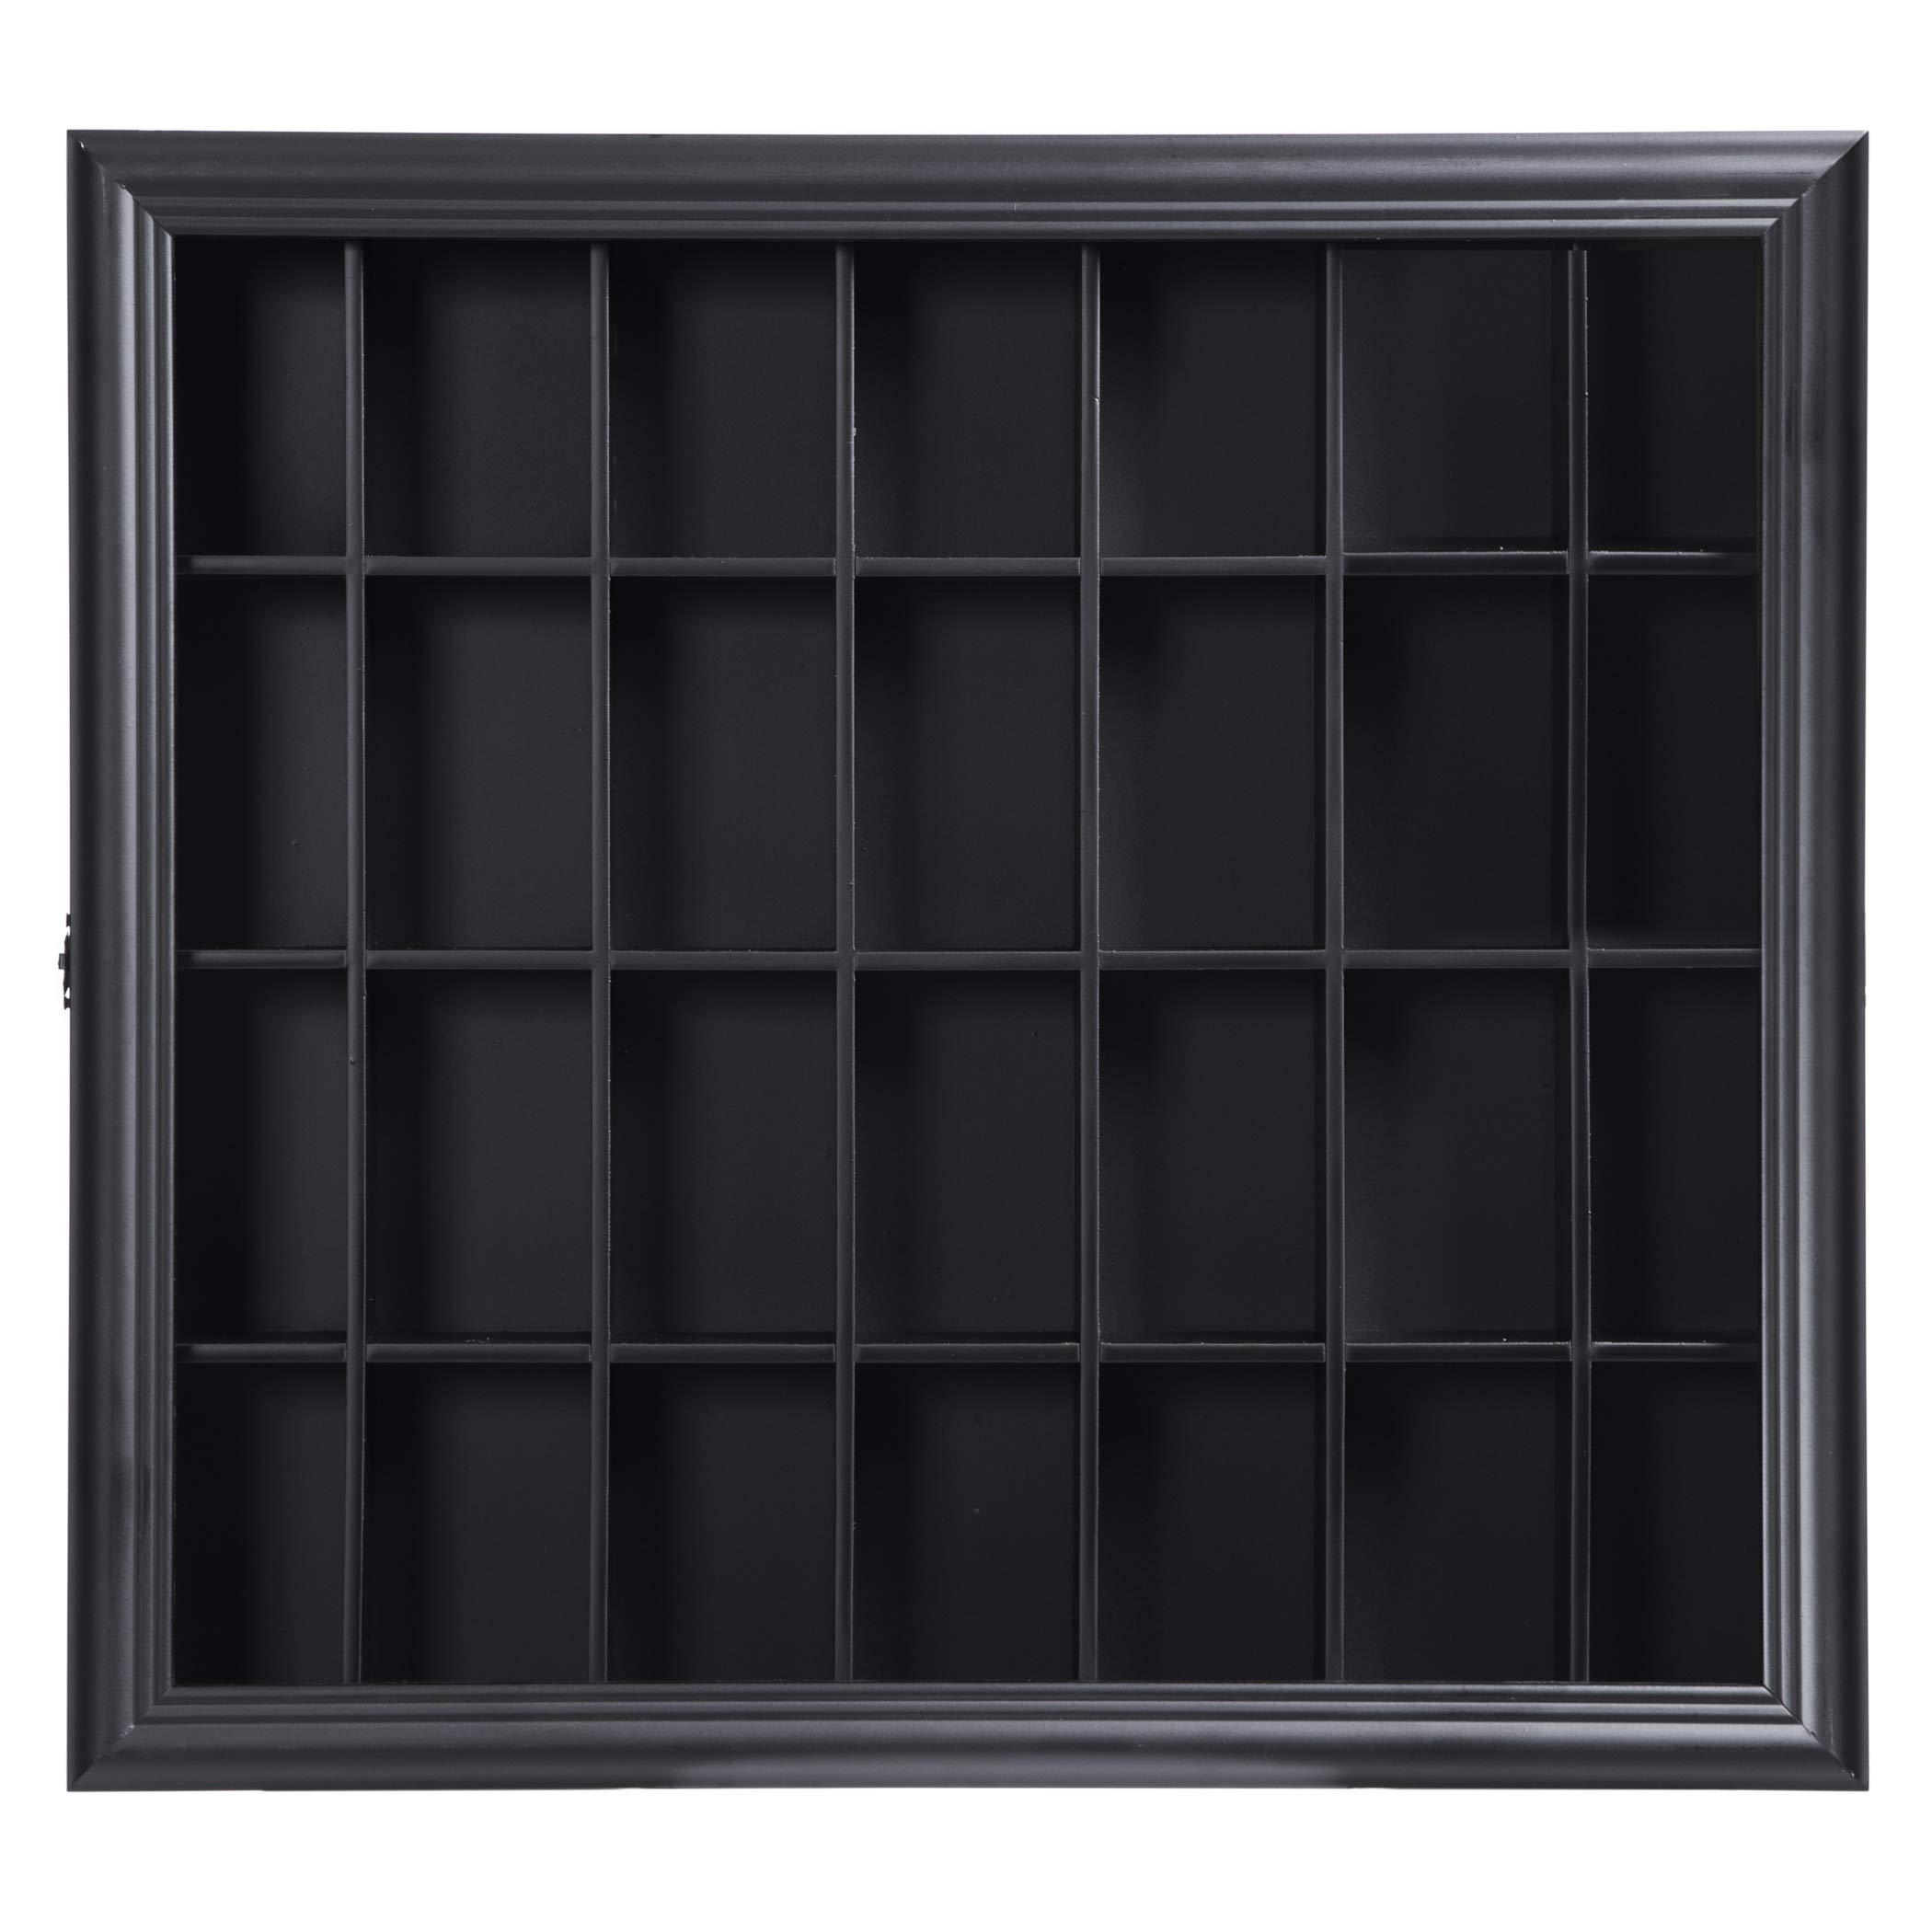 Gallery Solutions 18x16 Shot Glass Display Case with Hinged Front in Black by Gallery Solutions (Image #3)